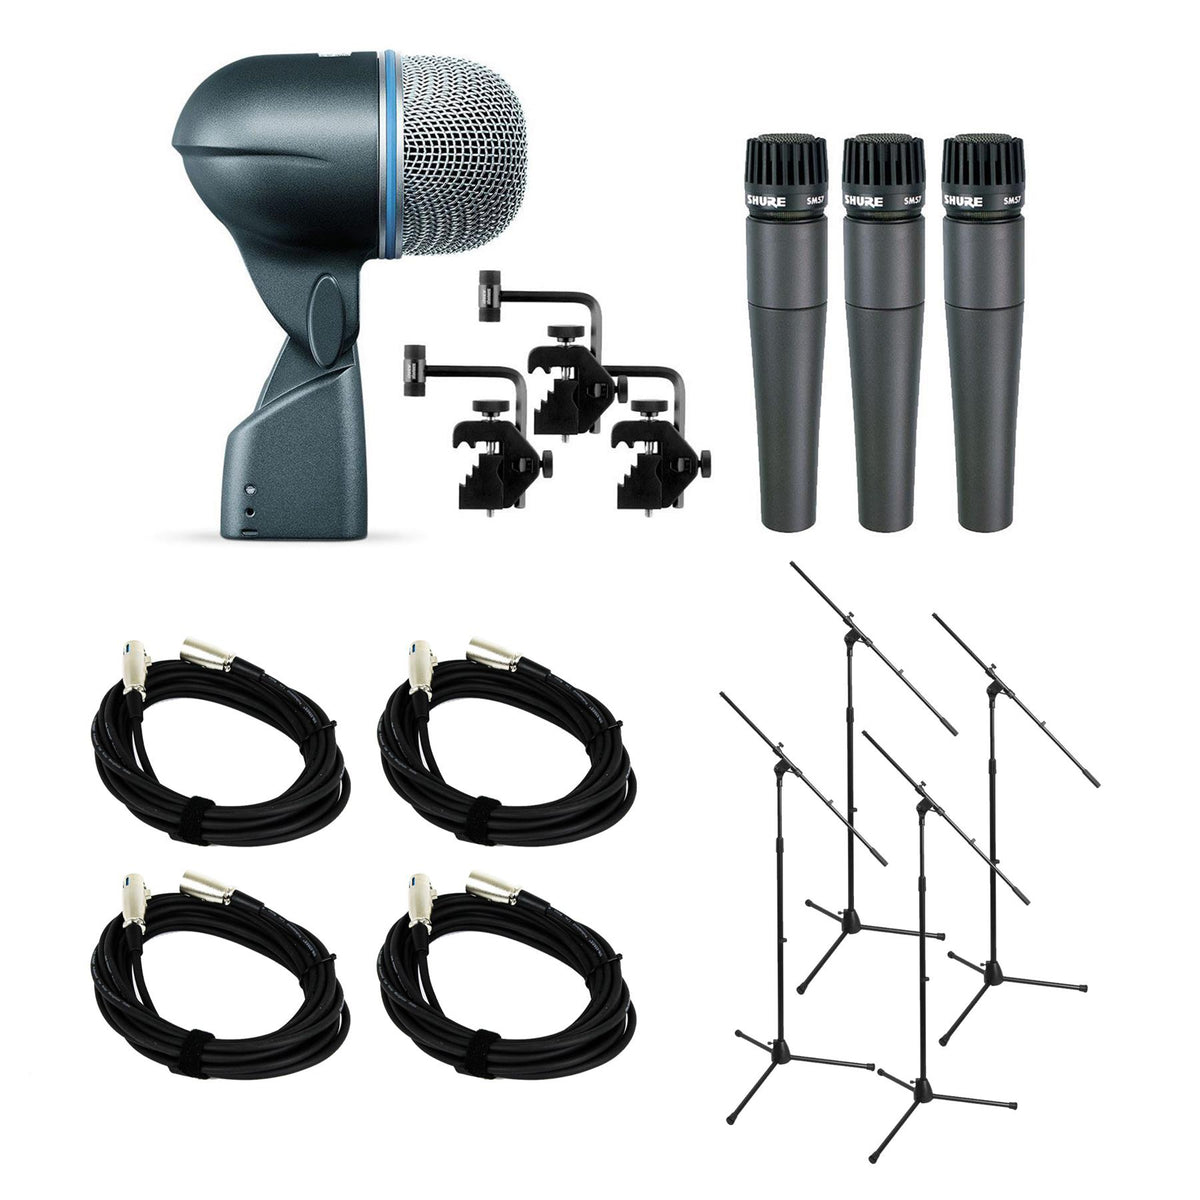 Shure DMK57-52 Drum Microphone Kit Bundle with 4 XLR Cables & 4 Mic Stands